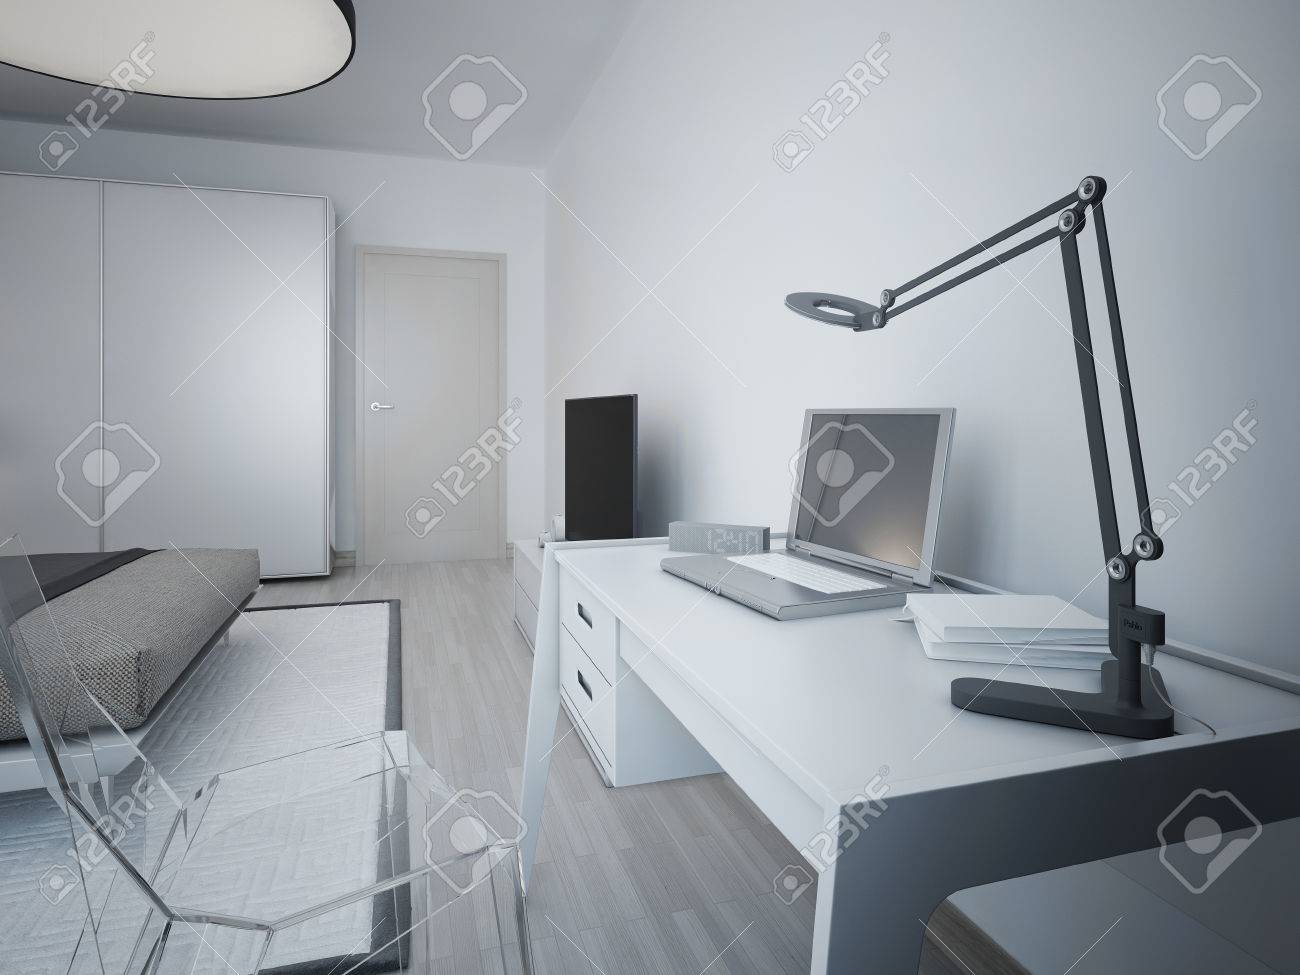 bedroom glass chair flip out sleeper idea of working area in modern white designer table stock and transparent